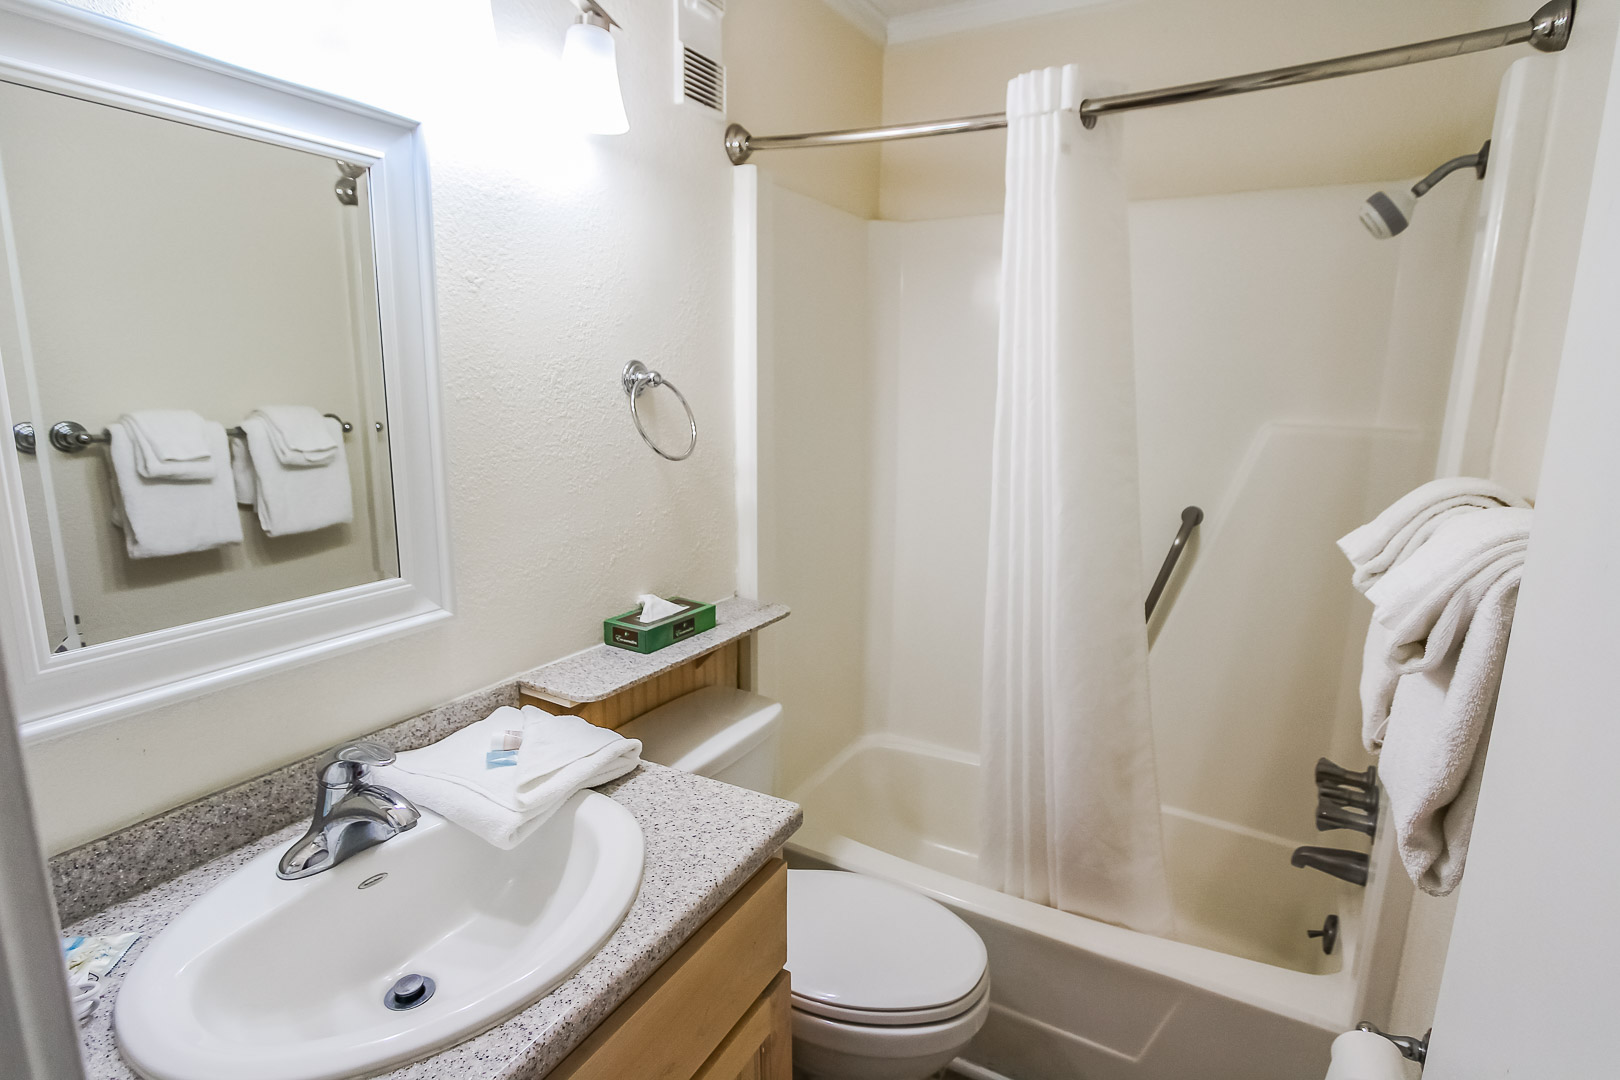 A crisp bathroom at VRI's A Place at the Beach III in North Carolina